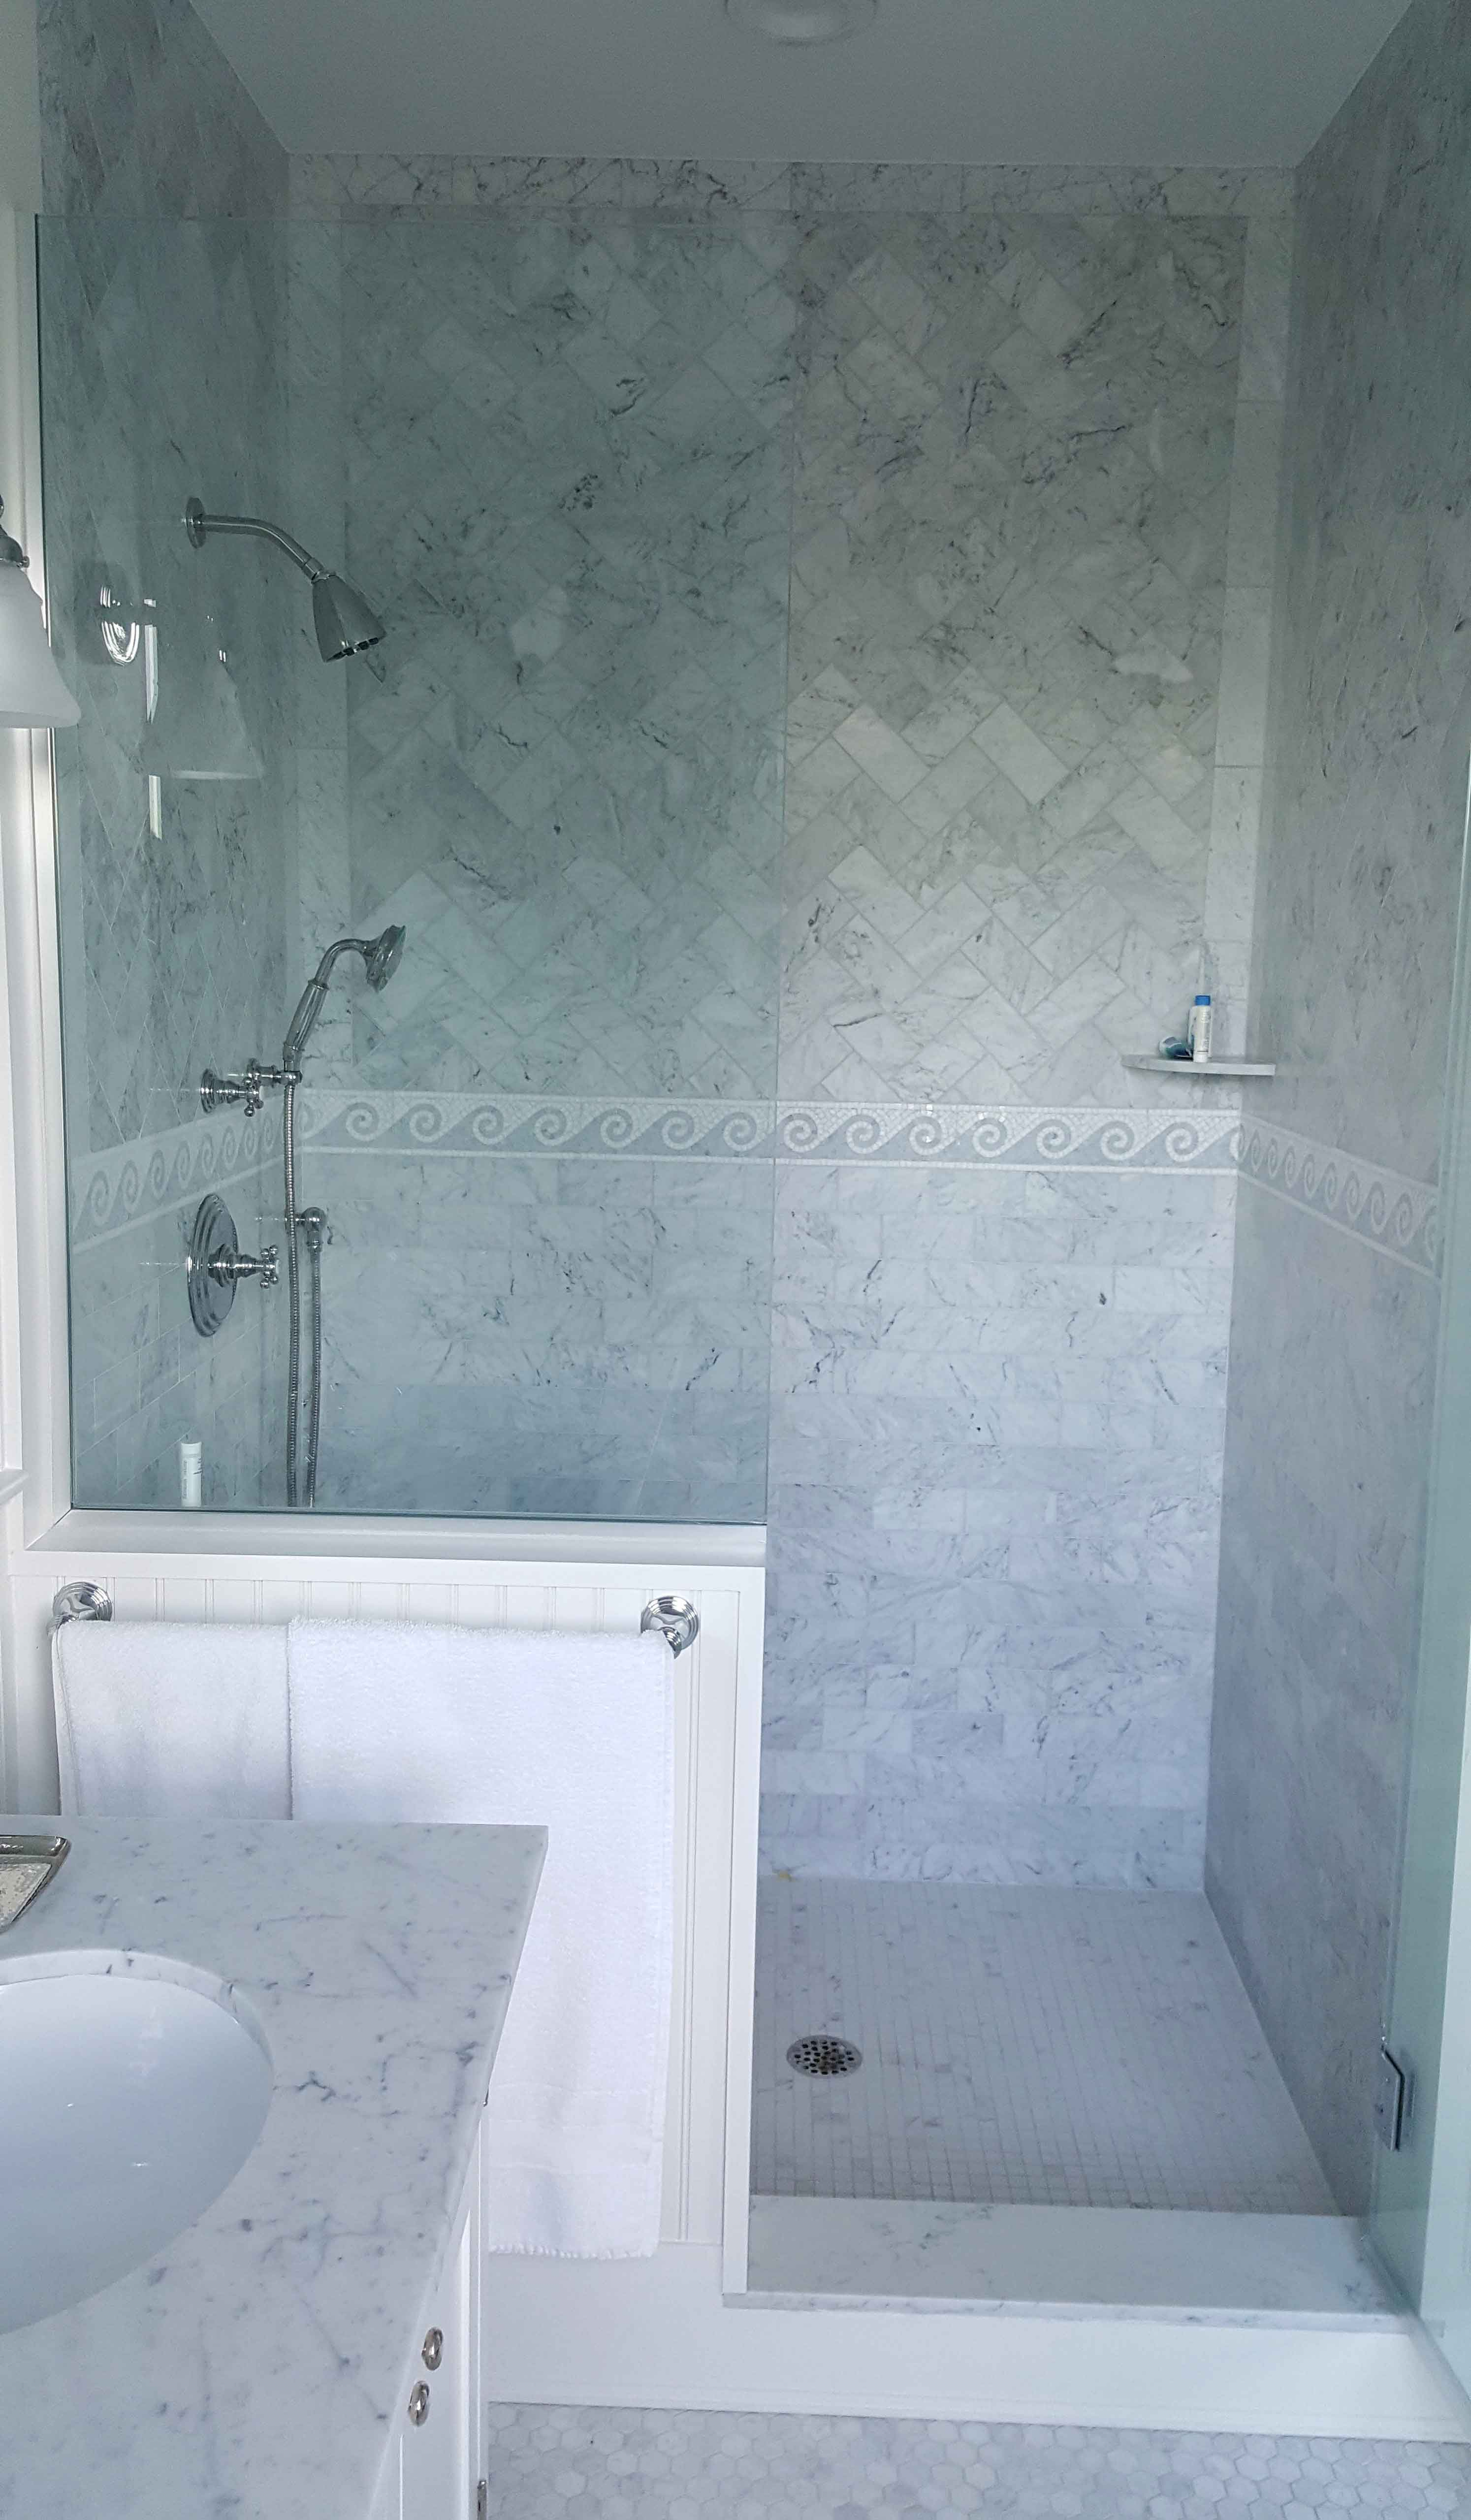 Marble Effects - Leader in Tile and Stone Installation